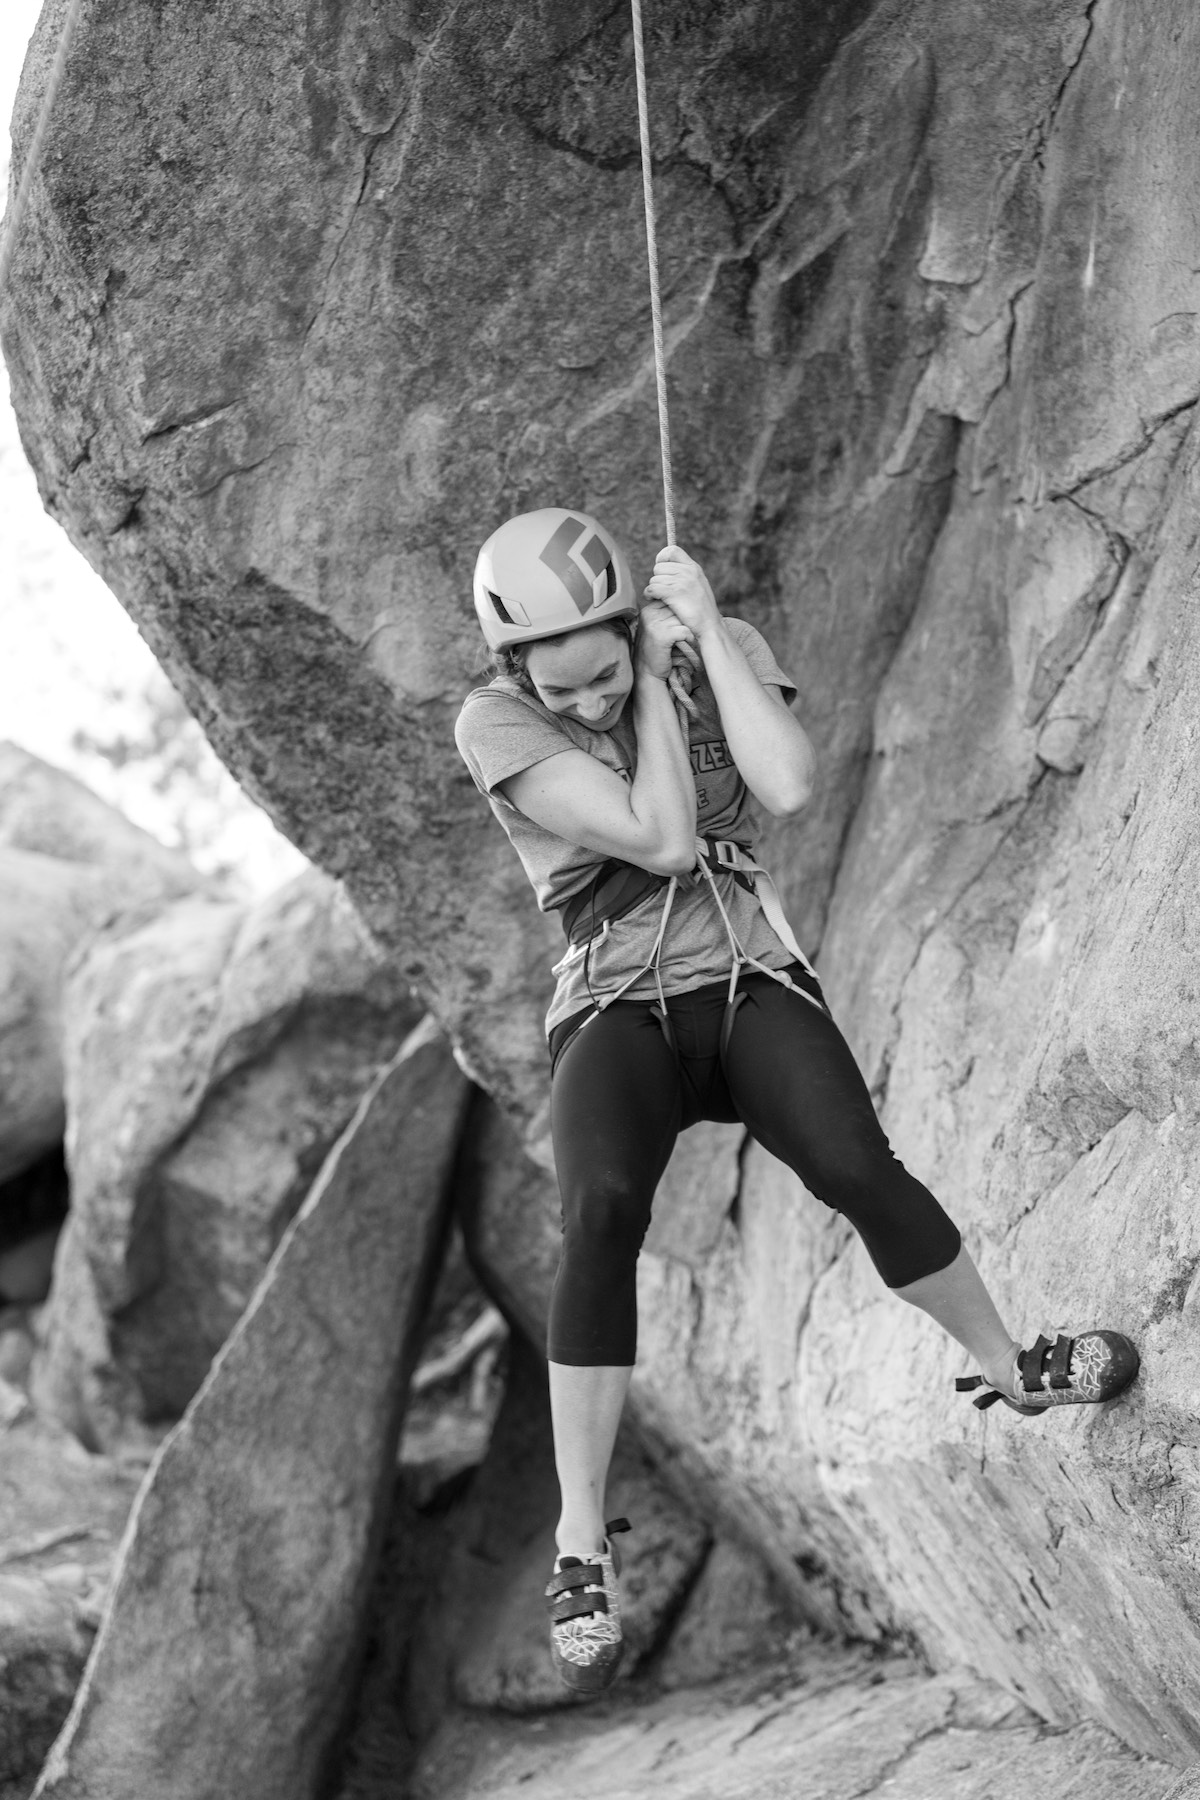 Rock Climbing Woman in Black and White